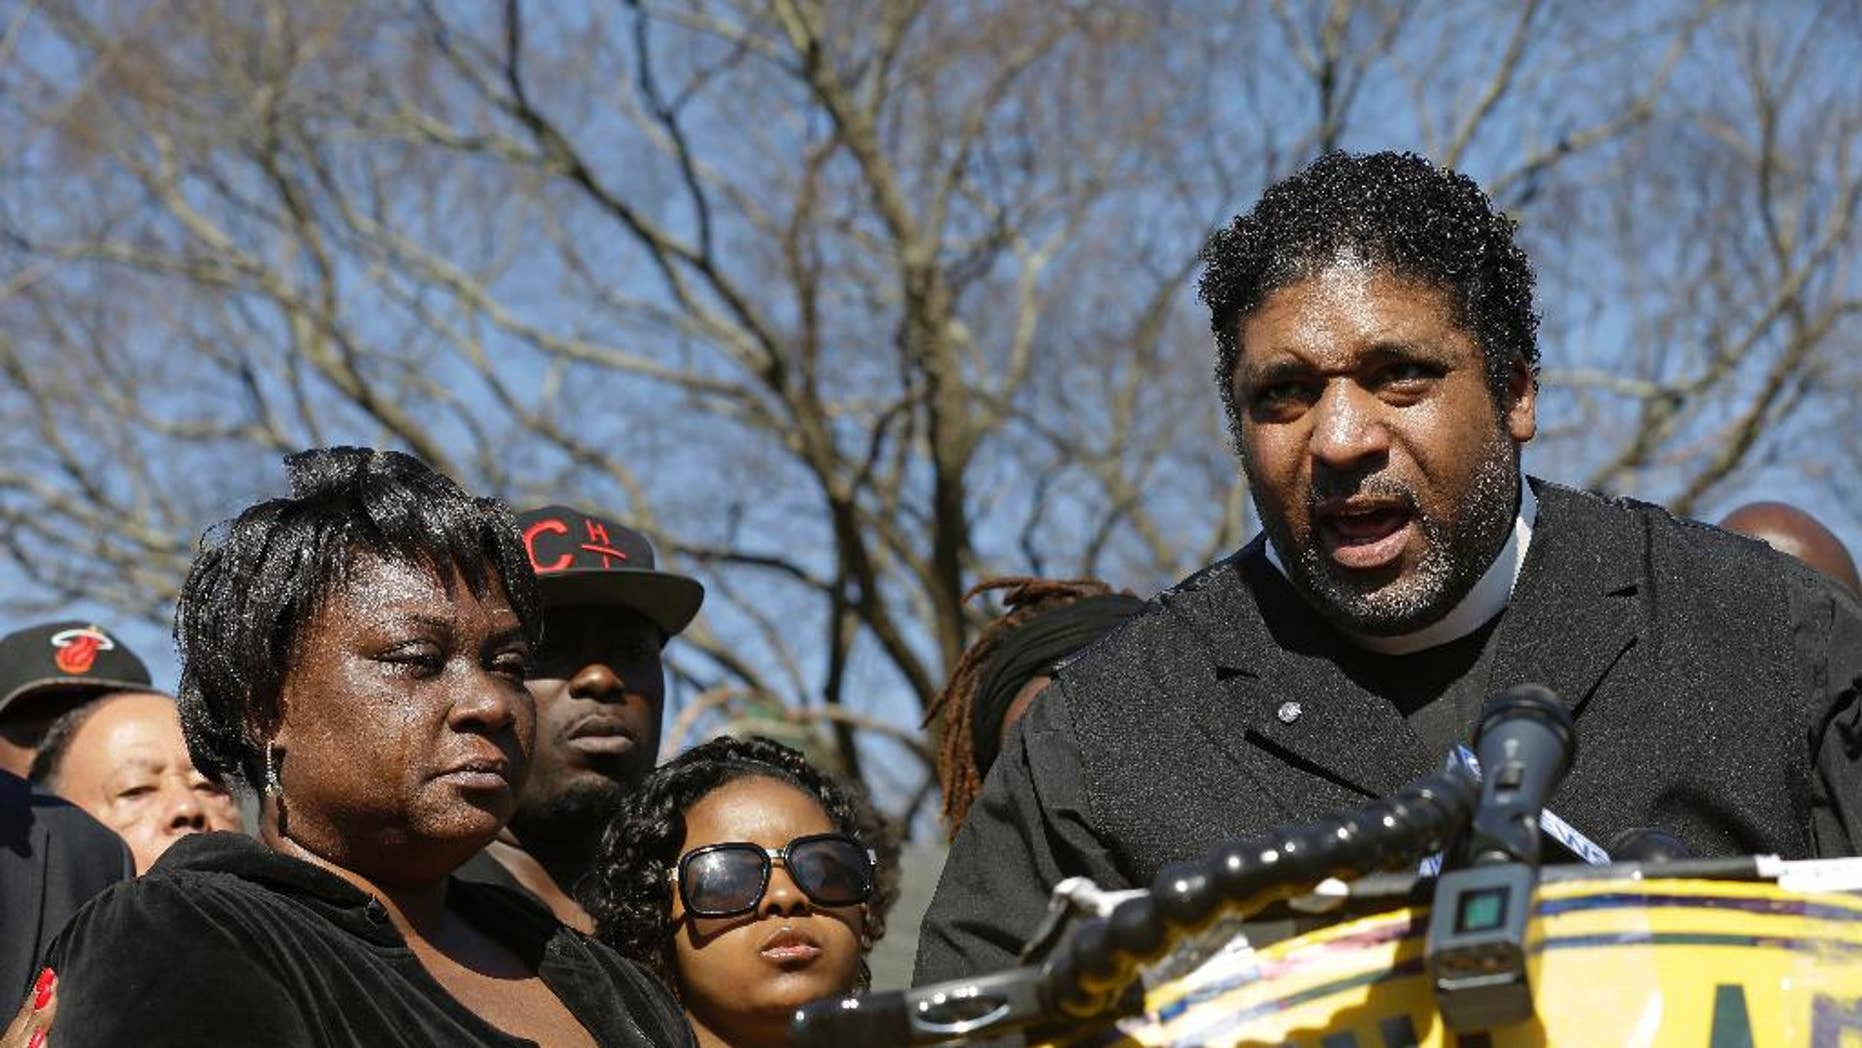 FILE - In this March 1, 2016, file photo, The Rev. William Barber II, right, head of the North Carolina National Association for the Advancement of Colored People, speaks during a news conference as Rolonda Byrd, left, who says she is the mother of shooting victim Akiel Denkins, listens near the scene of a shooting in Raleigh, N.C. Barber and the Rev. James Forbes said Monday, March 28, 2016, that they want to encourage people to reclaim political discourse so that it focuses on love, justice and mercy. (AP Photo/Gerry Broome)